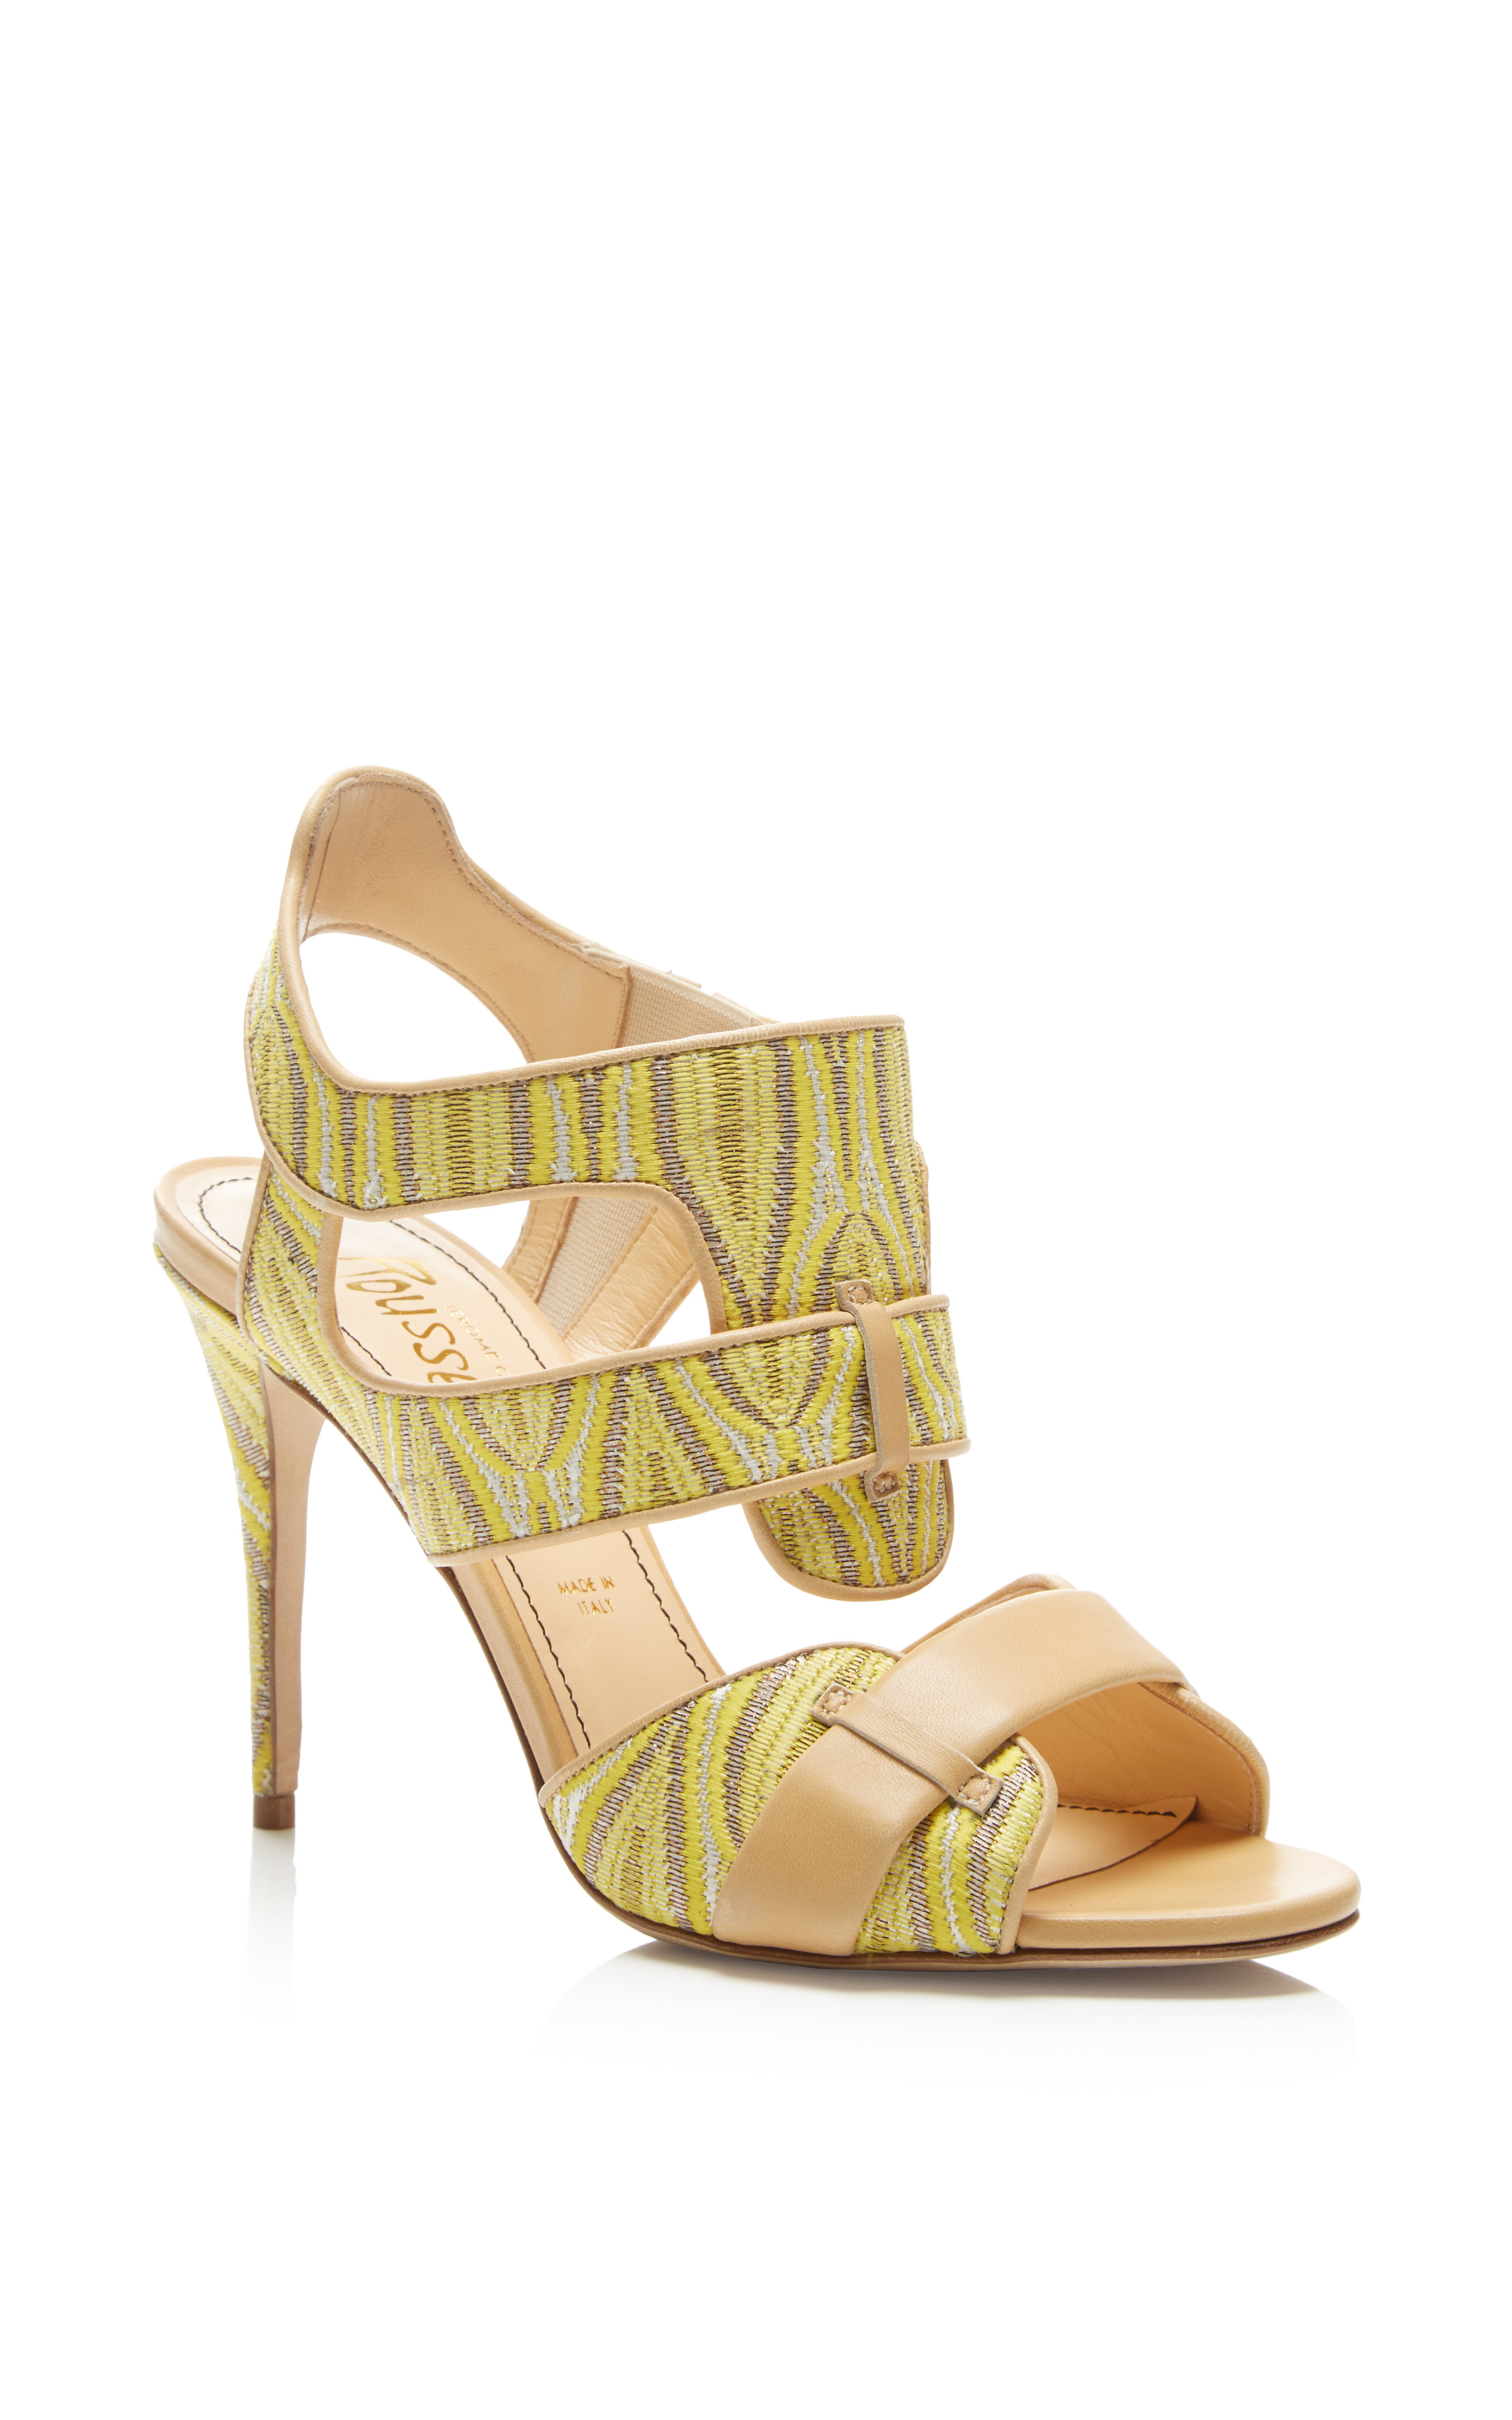 Pre-owned - Yellow Leather Heels Jerome Rousseau uerh6pGvN5